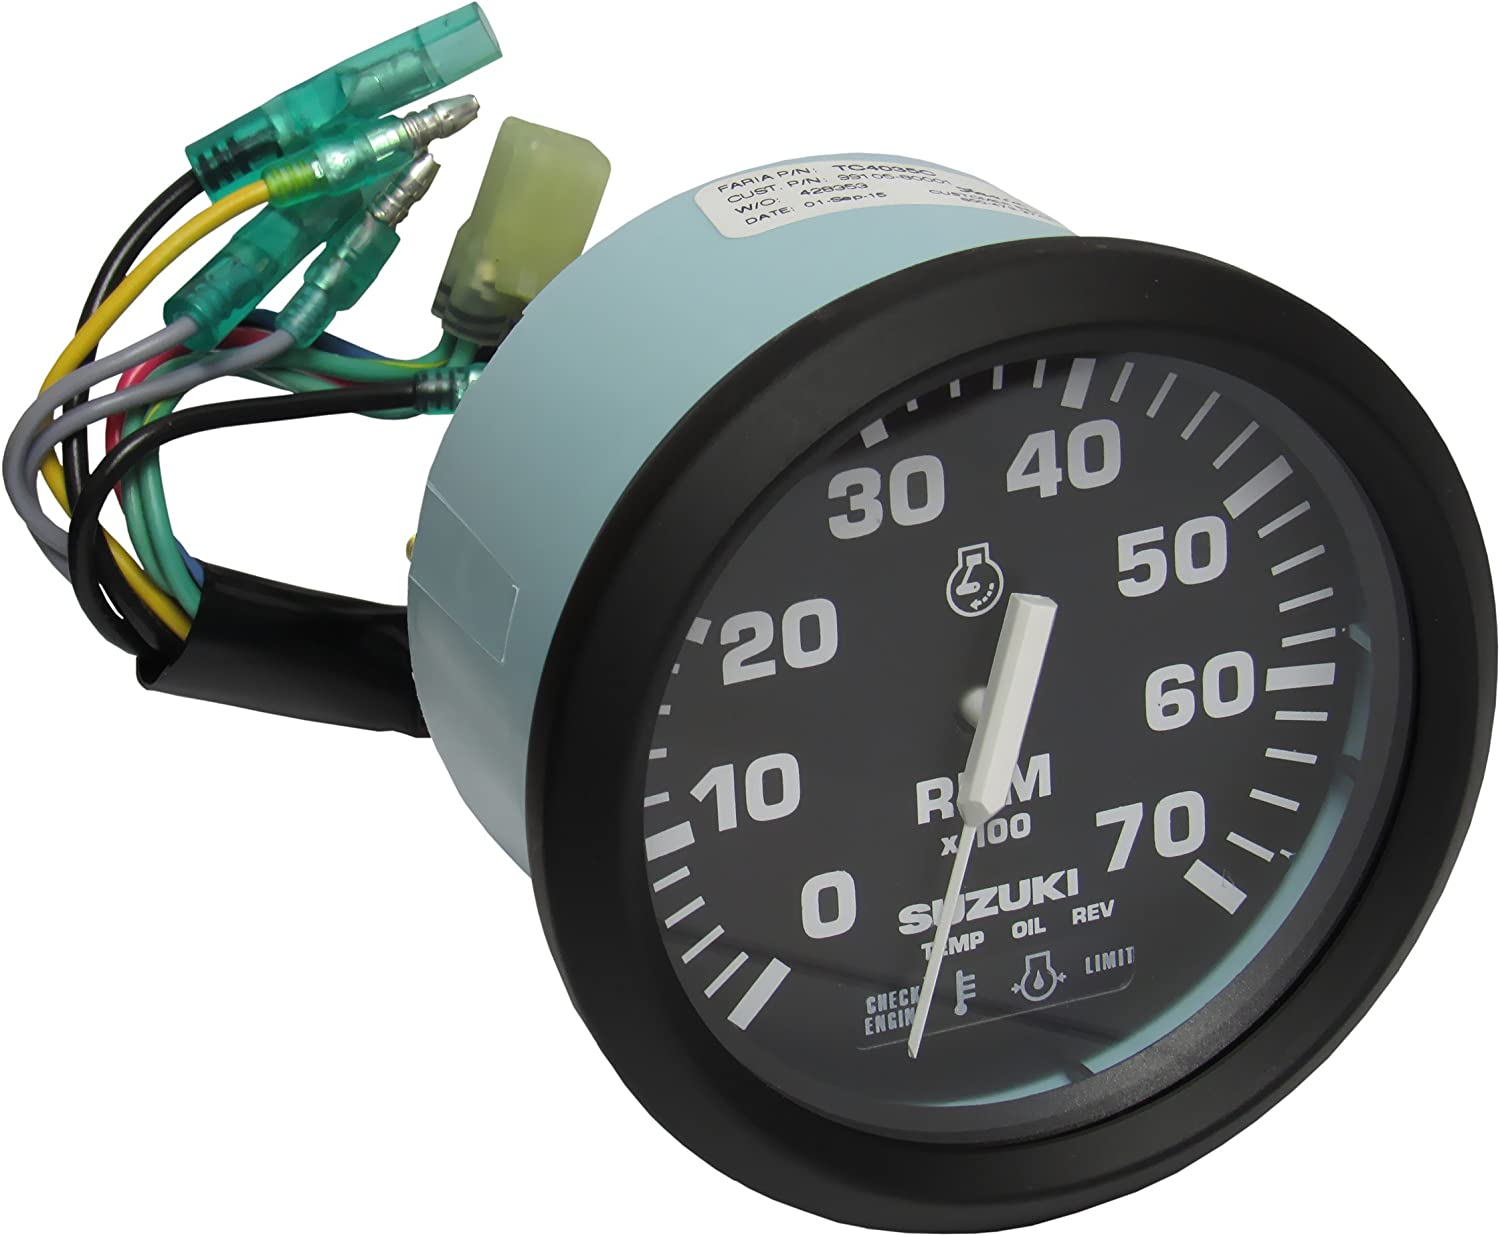 Suzuki Outboard Multifunction Gauge Wiring Diagram from images-na.ssl-images-amazon.com